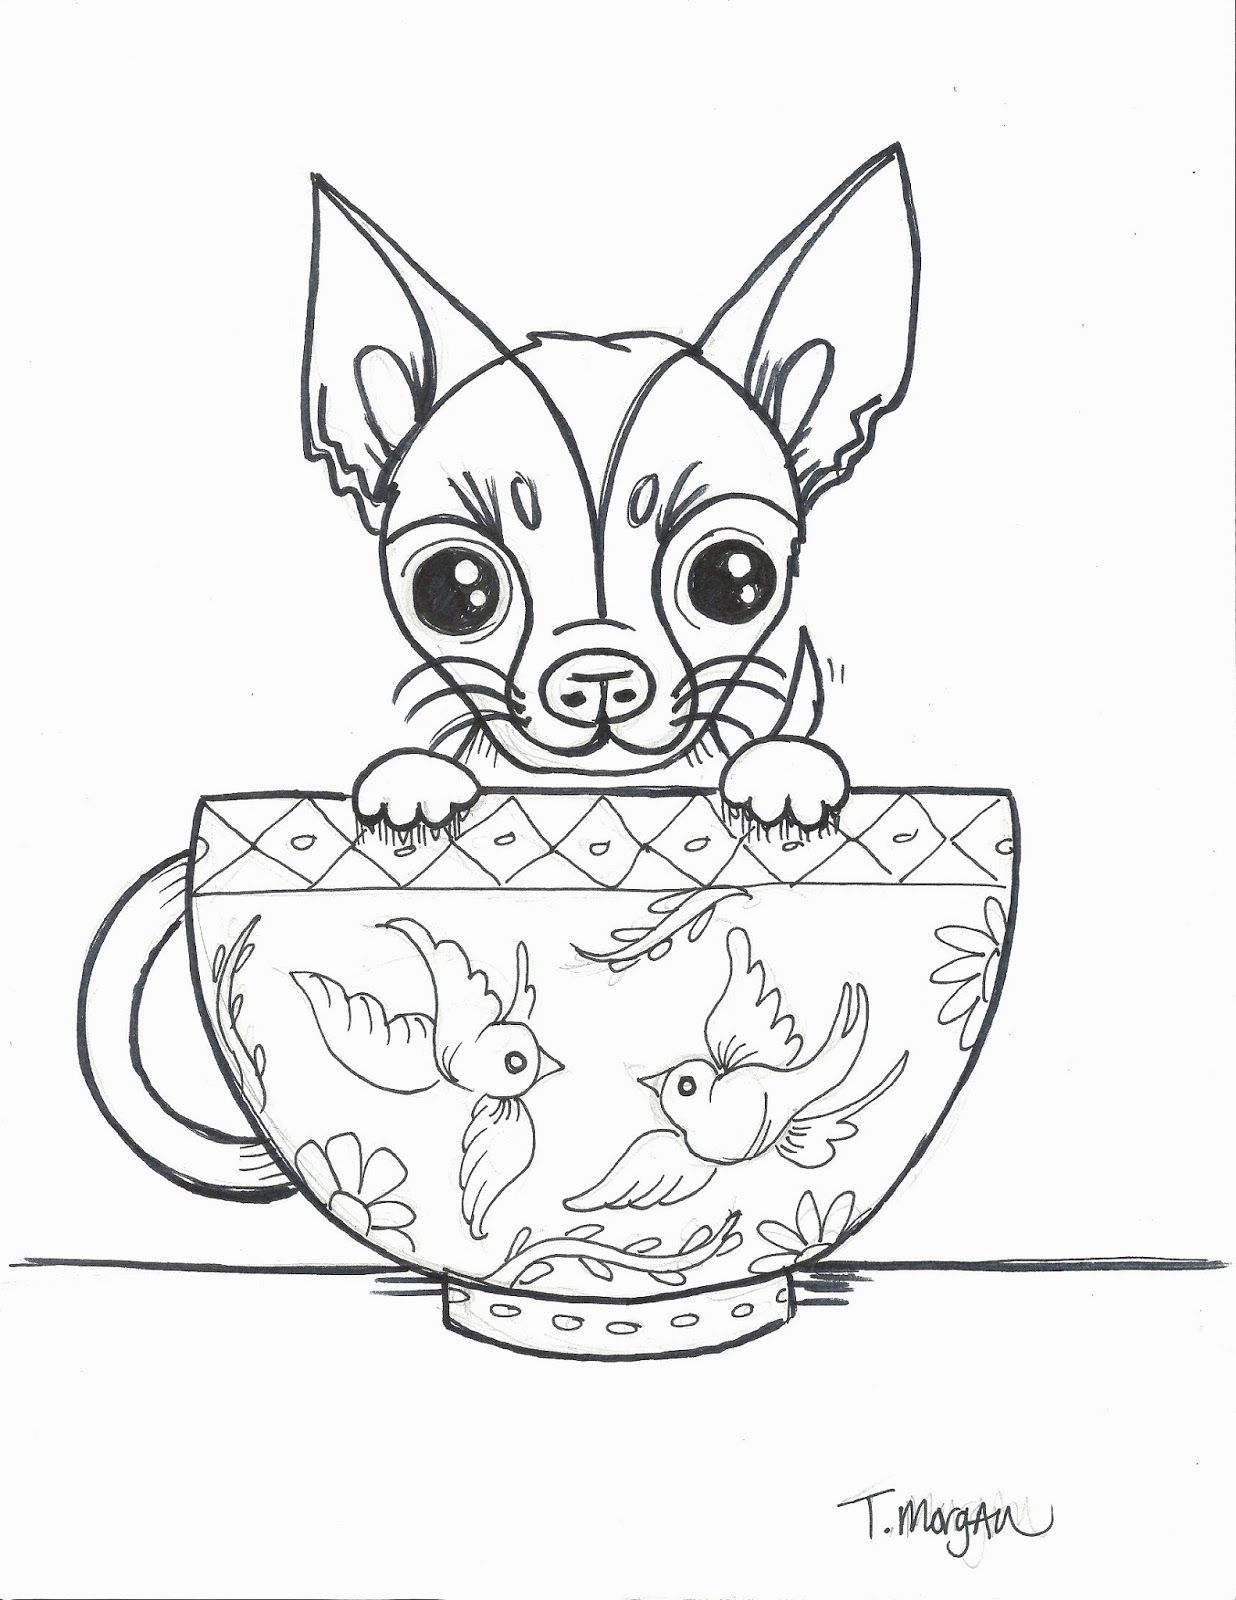 The Lost Sock Teacup Chihuahua